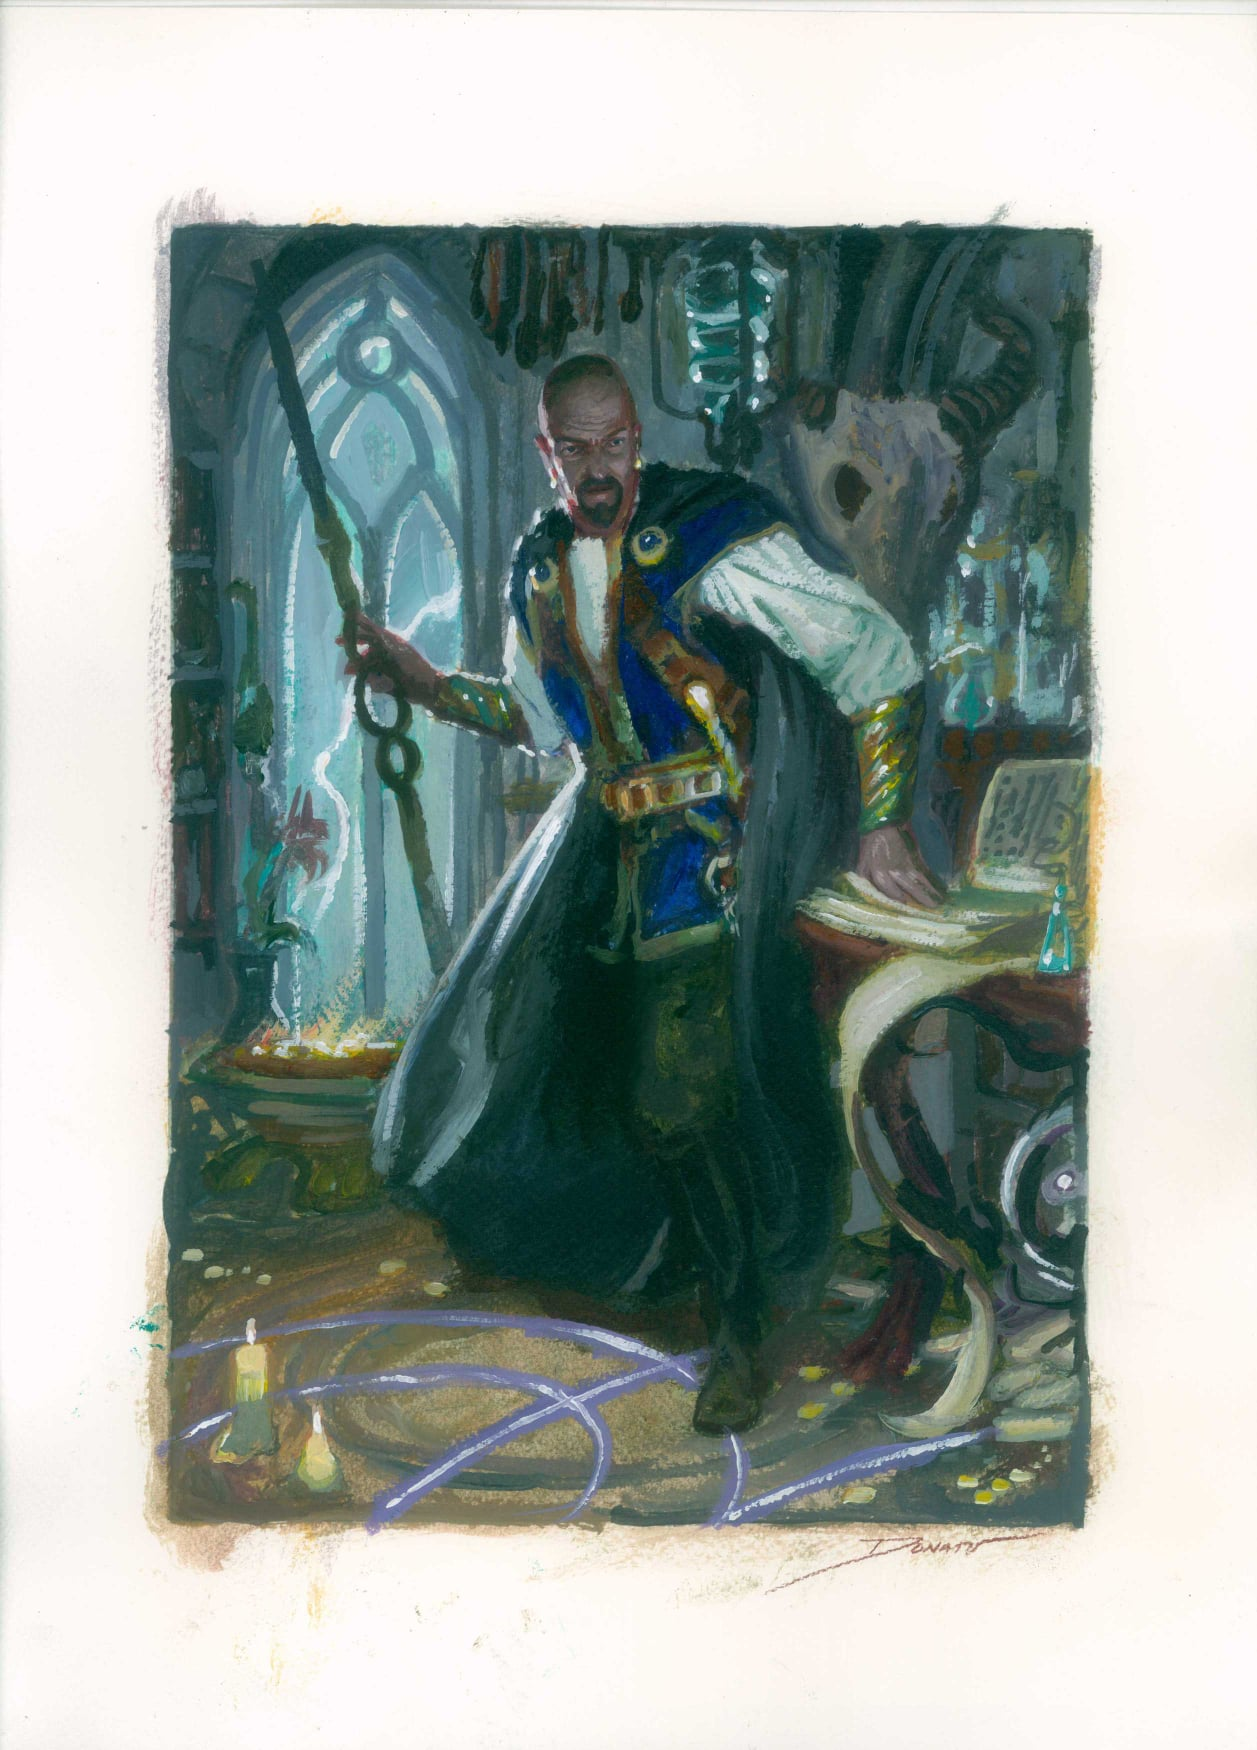 https://youre.outof.cards/media/uploads/59/7c/597ca074-2926-49f4-a0f9-86045bf8cc51/mordenkainen_oil_acrylic_donatogiancola.jpg